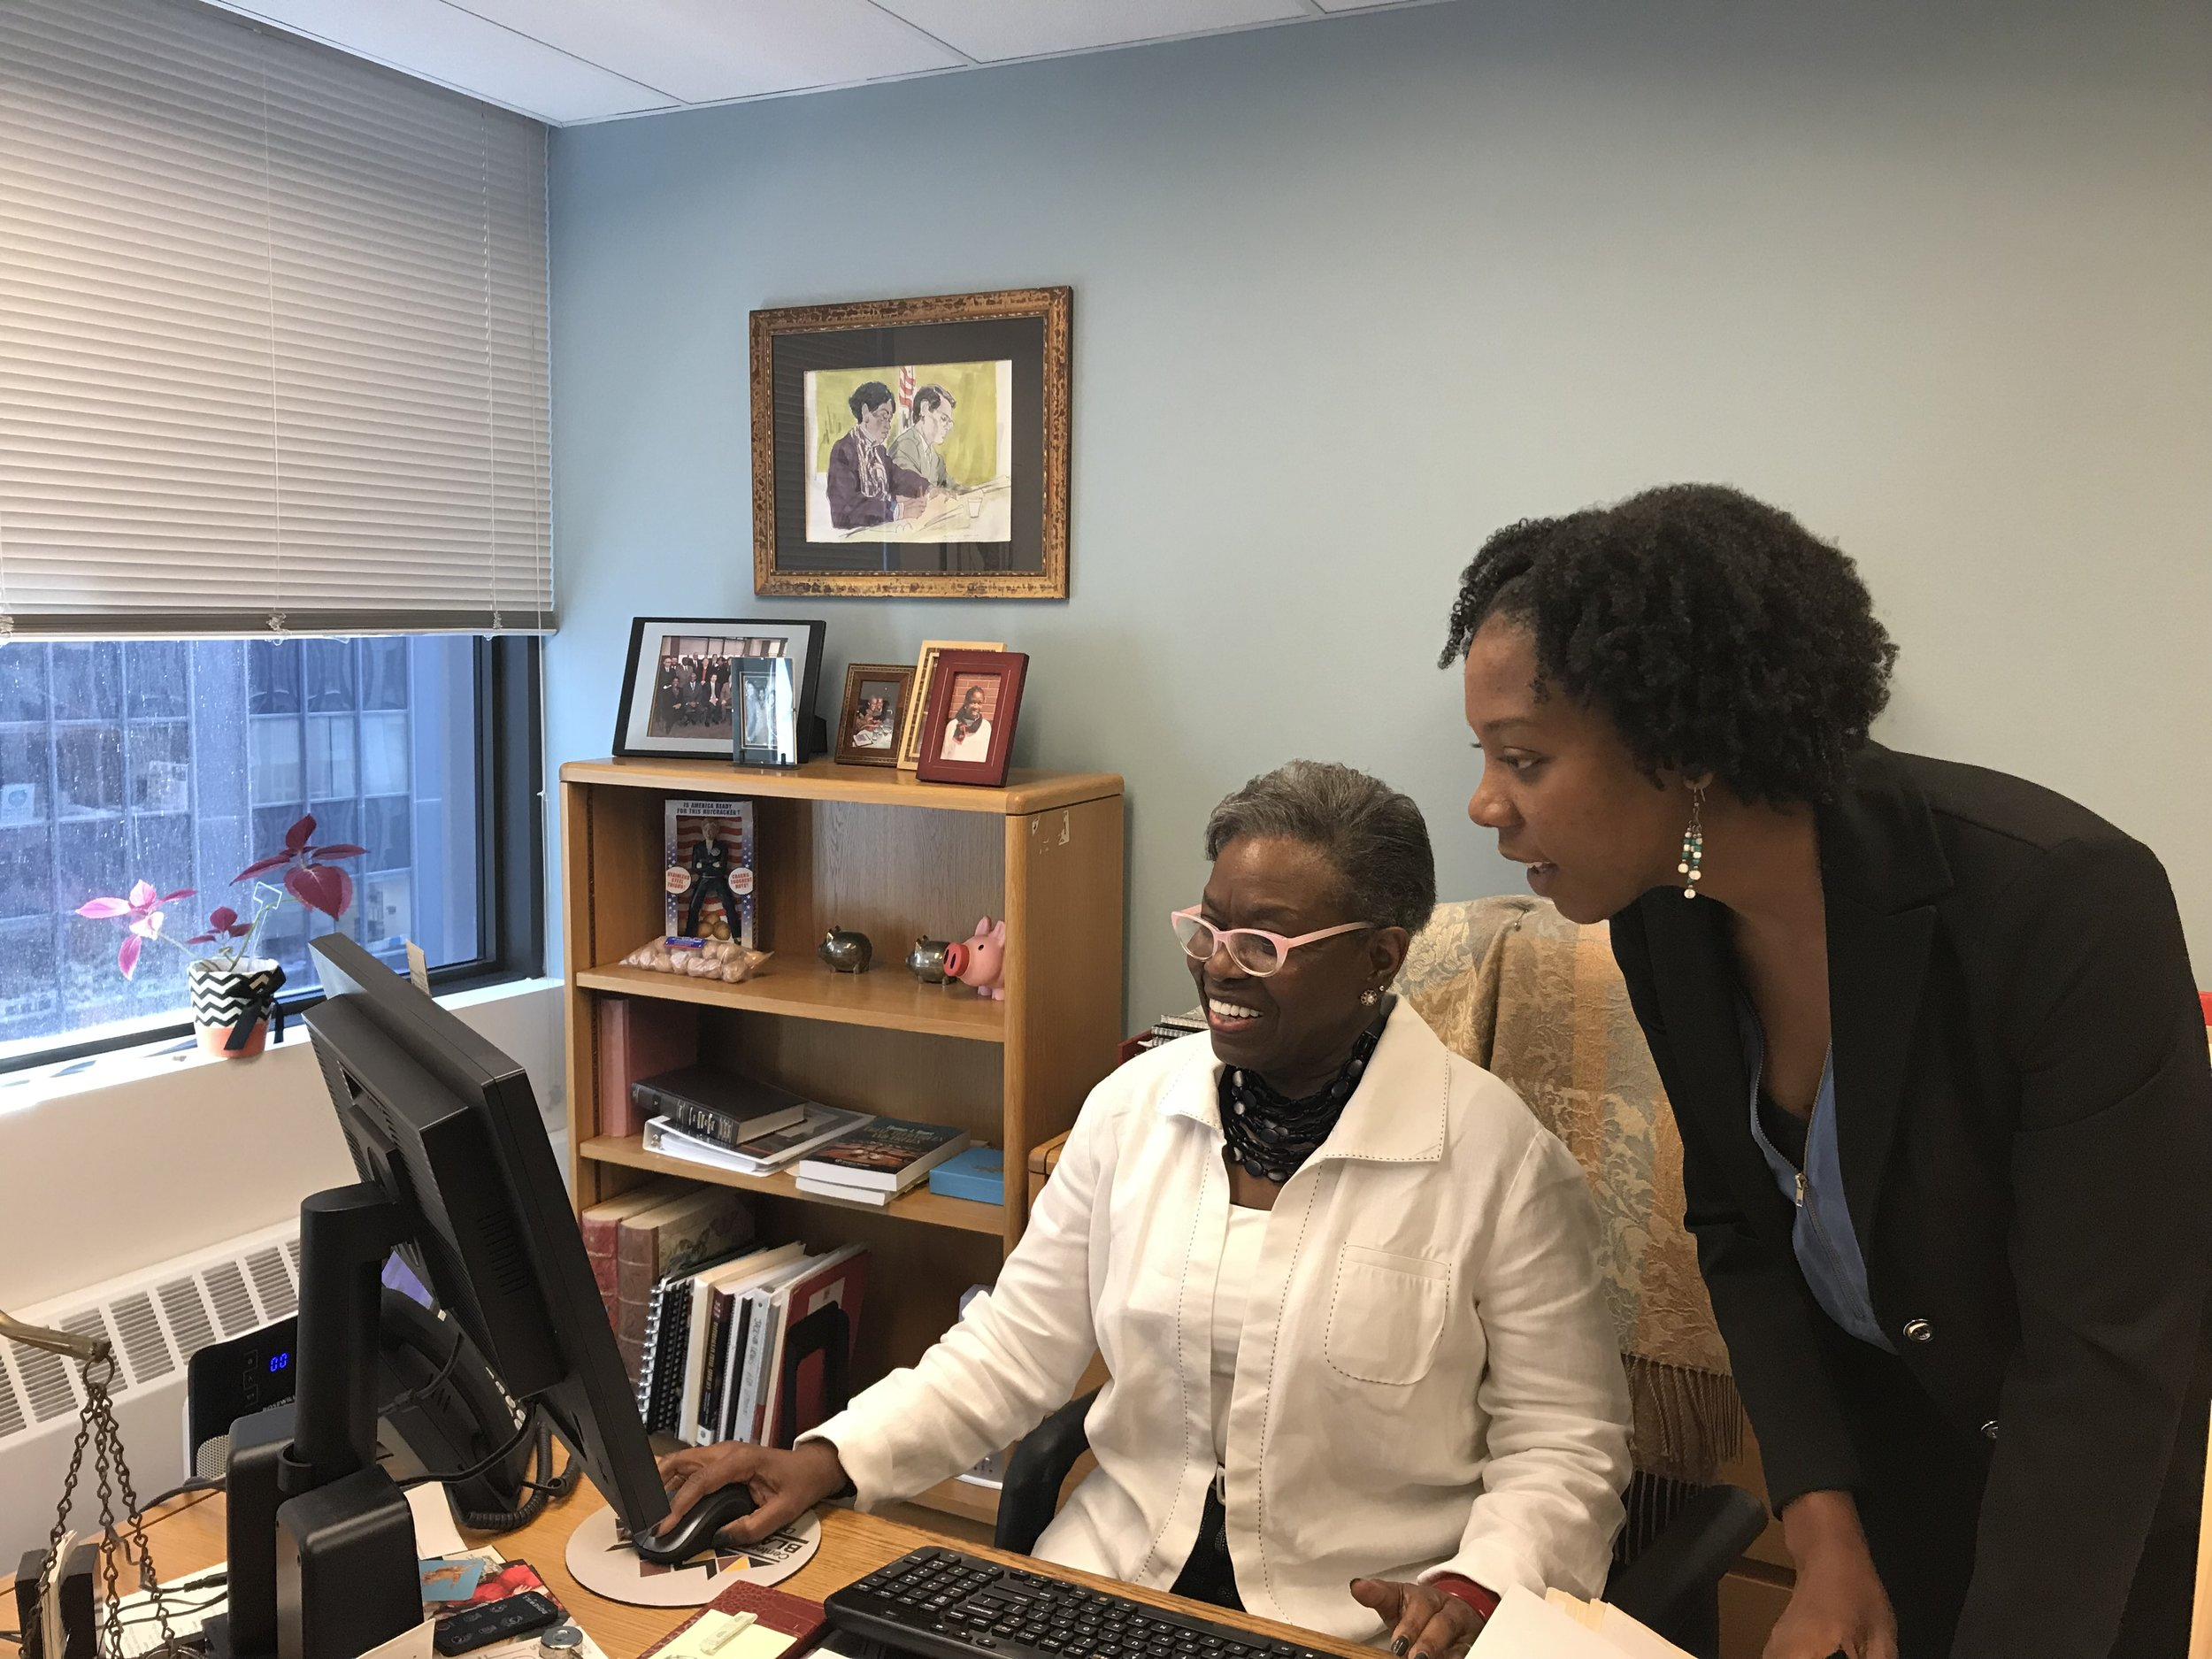 Natasha Wilkins (right) working with J. Cunyon Gordon, Director of the Settlement Assistance Program (seated).